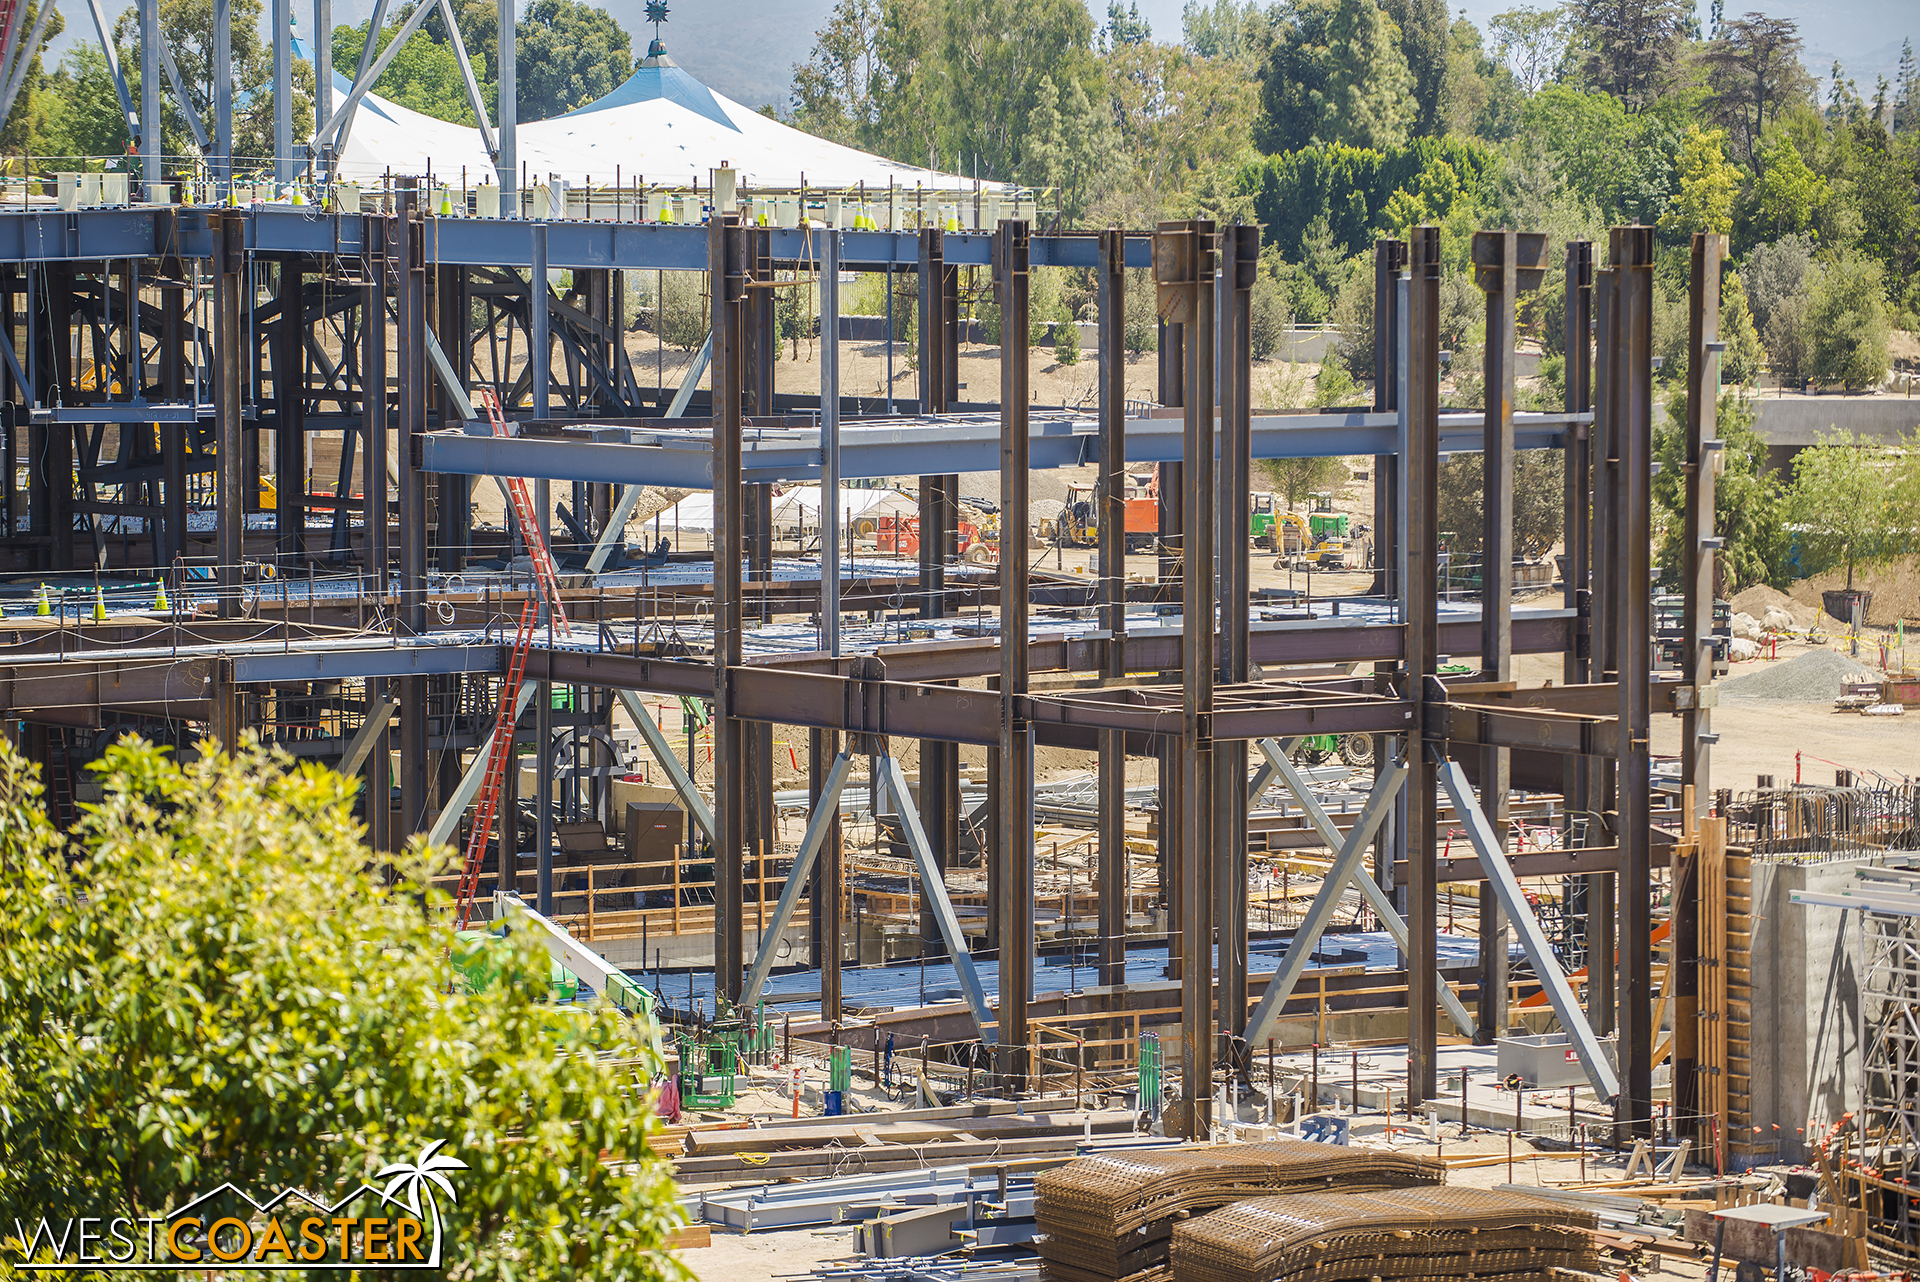 More columns and braced frames coming outward, which really starts to reveal the massive scale of the First Order attraction.